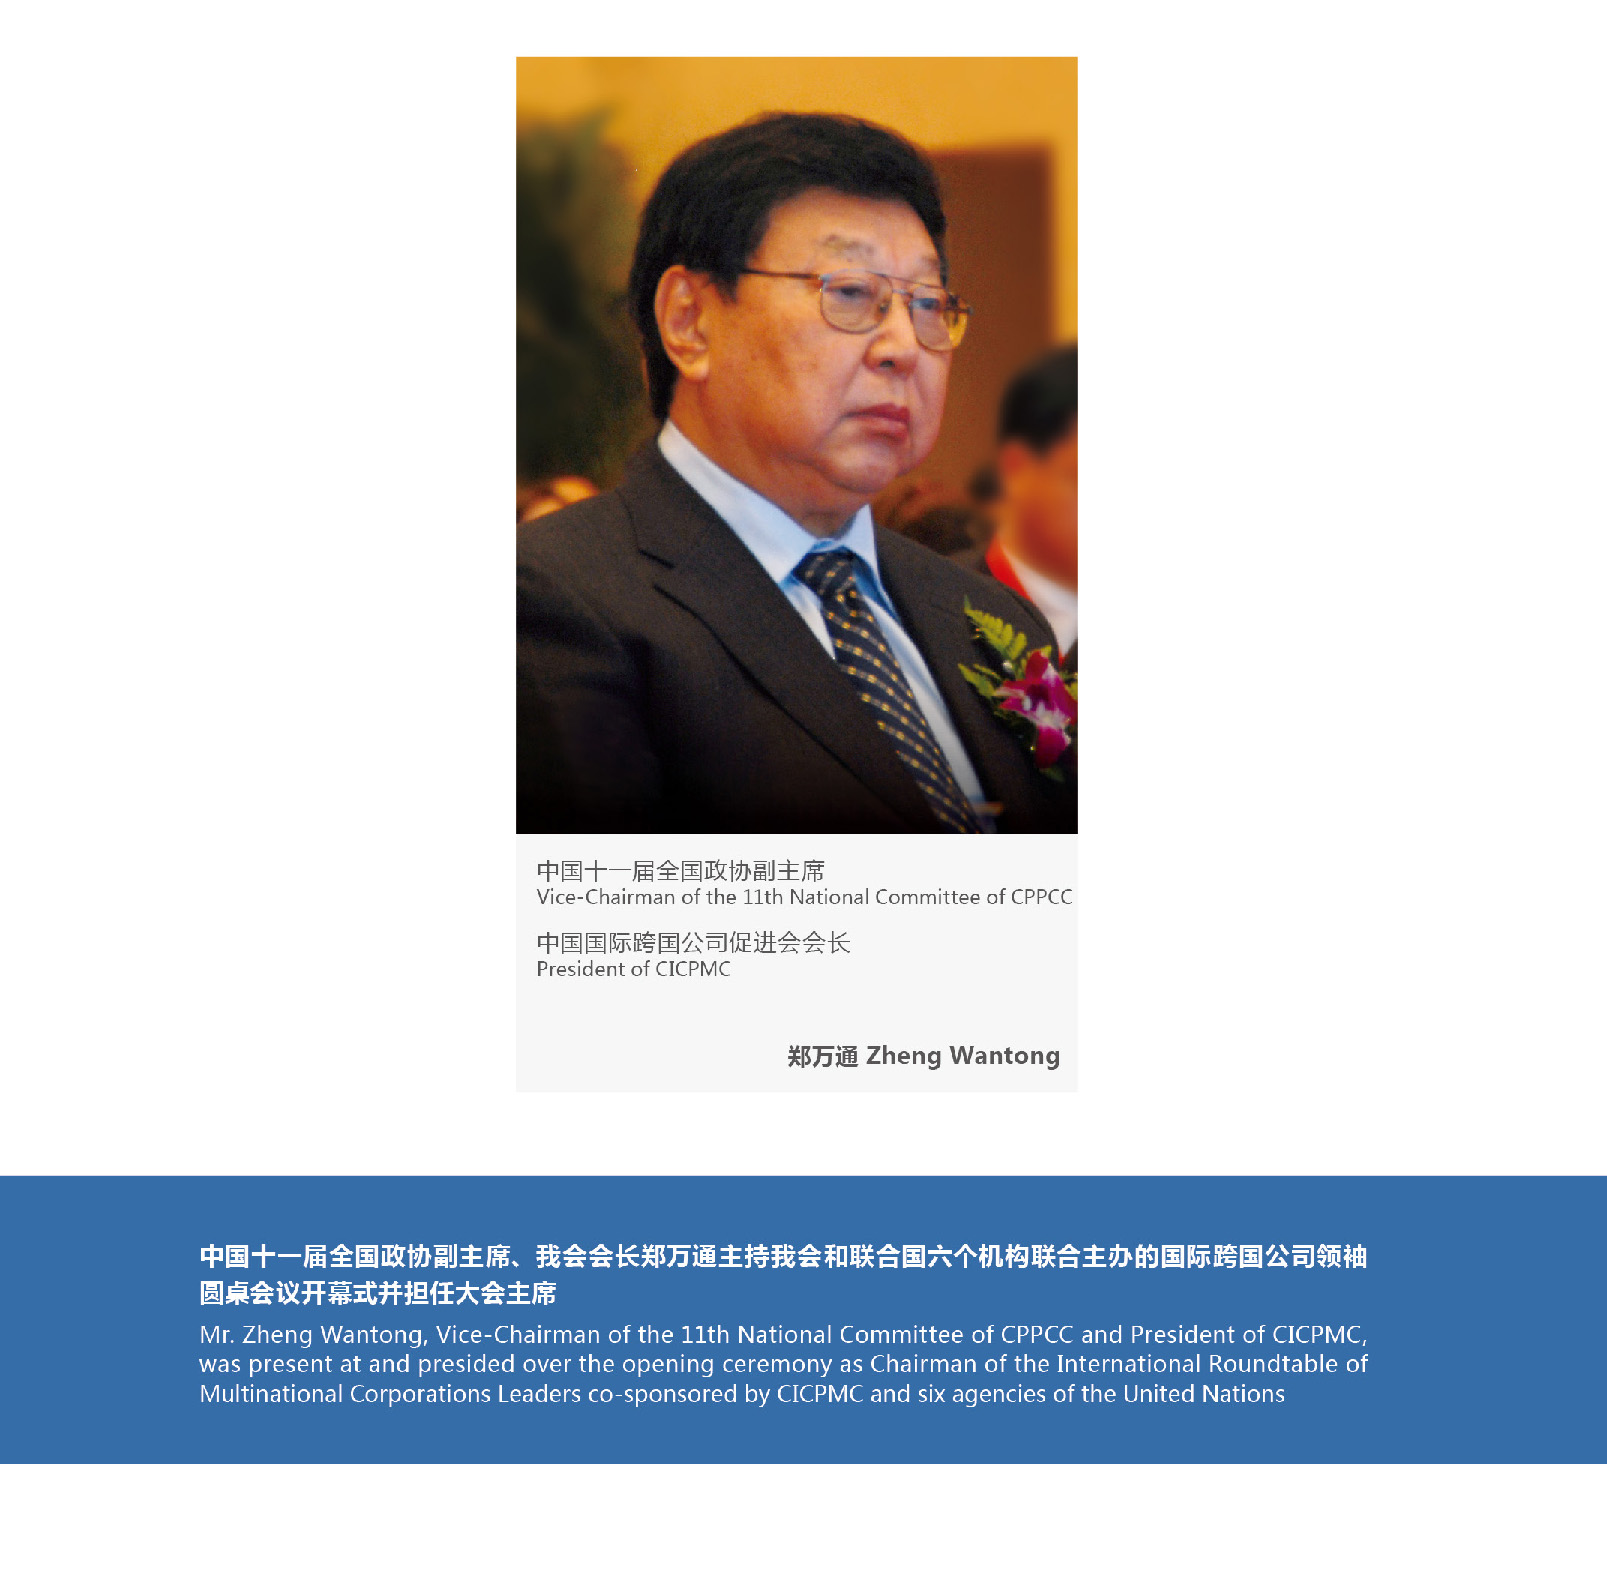 Mr. Zheng Wantong, Vice-Chairman of the 11th National Committee of CPPCC and President of CICPMC, was present at and presided over the opening ceremony as Chairman of the International Roundtable of Multinational Corporations Leaders co-sponsored by CICPMC and six agencies of the United Nations